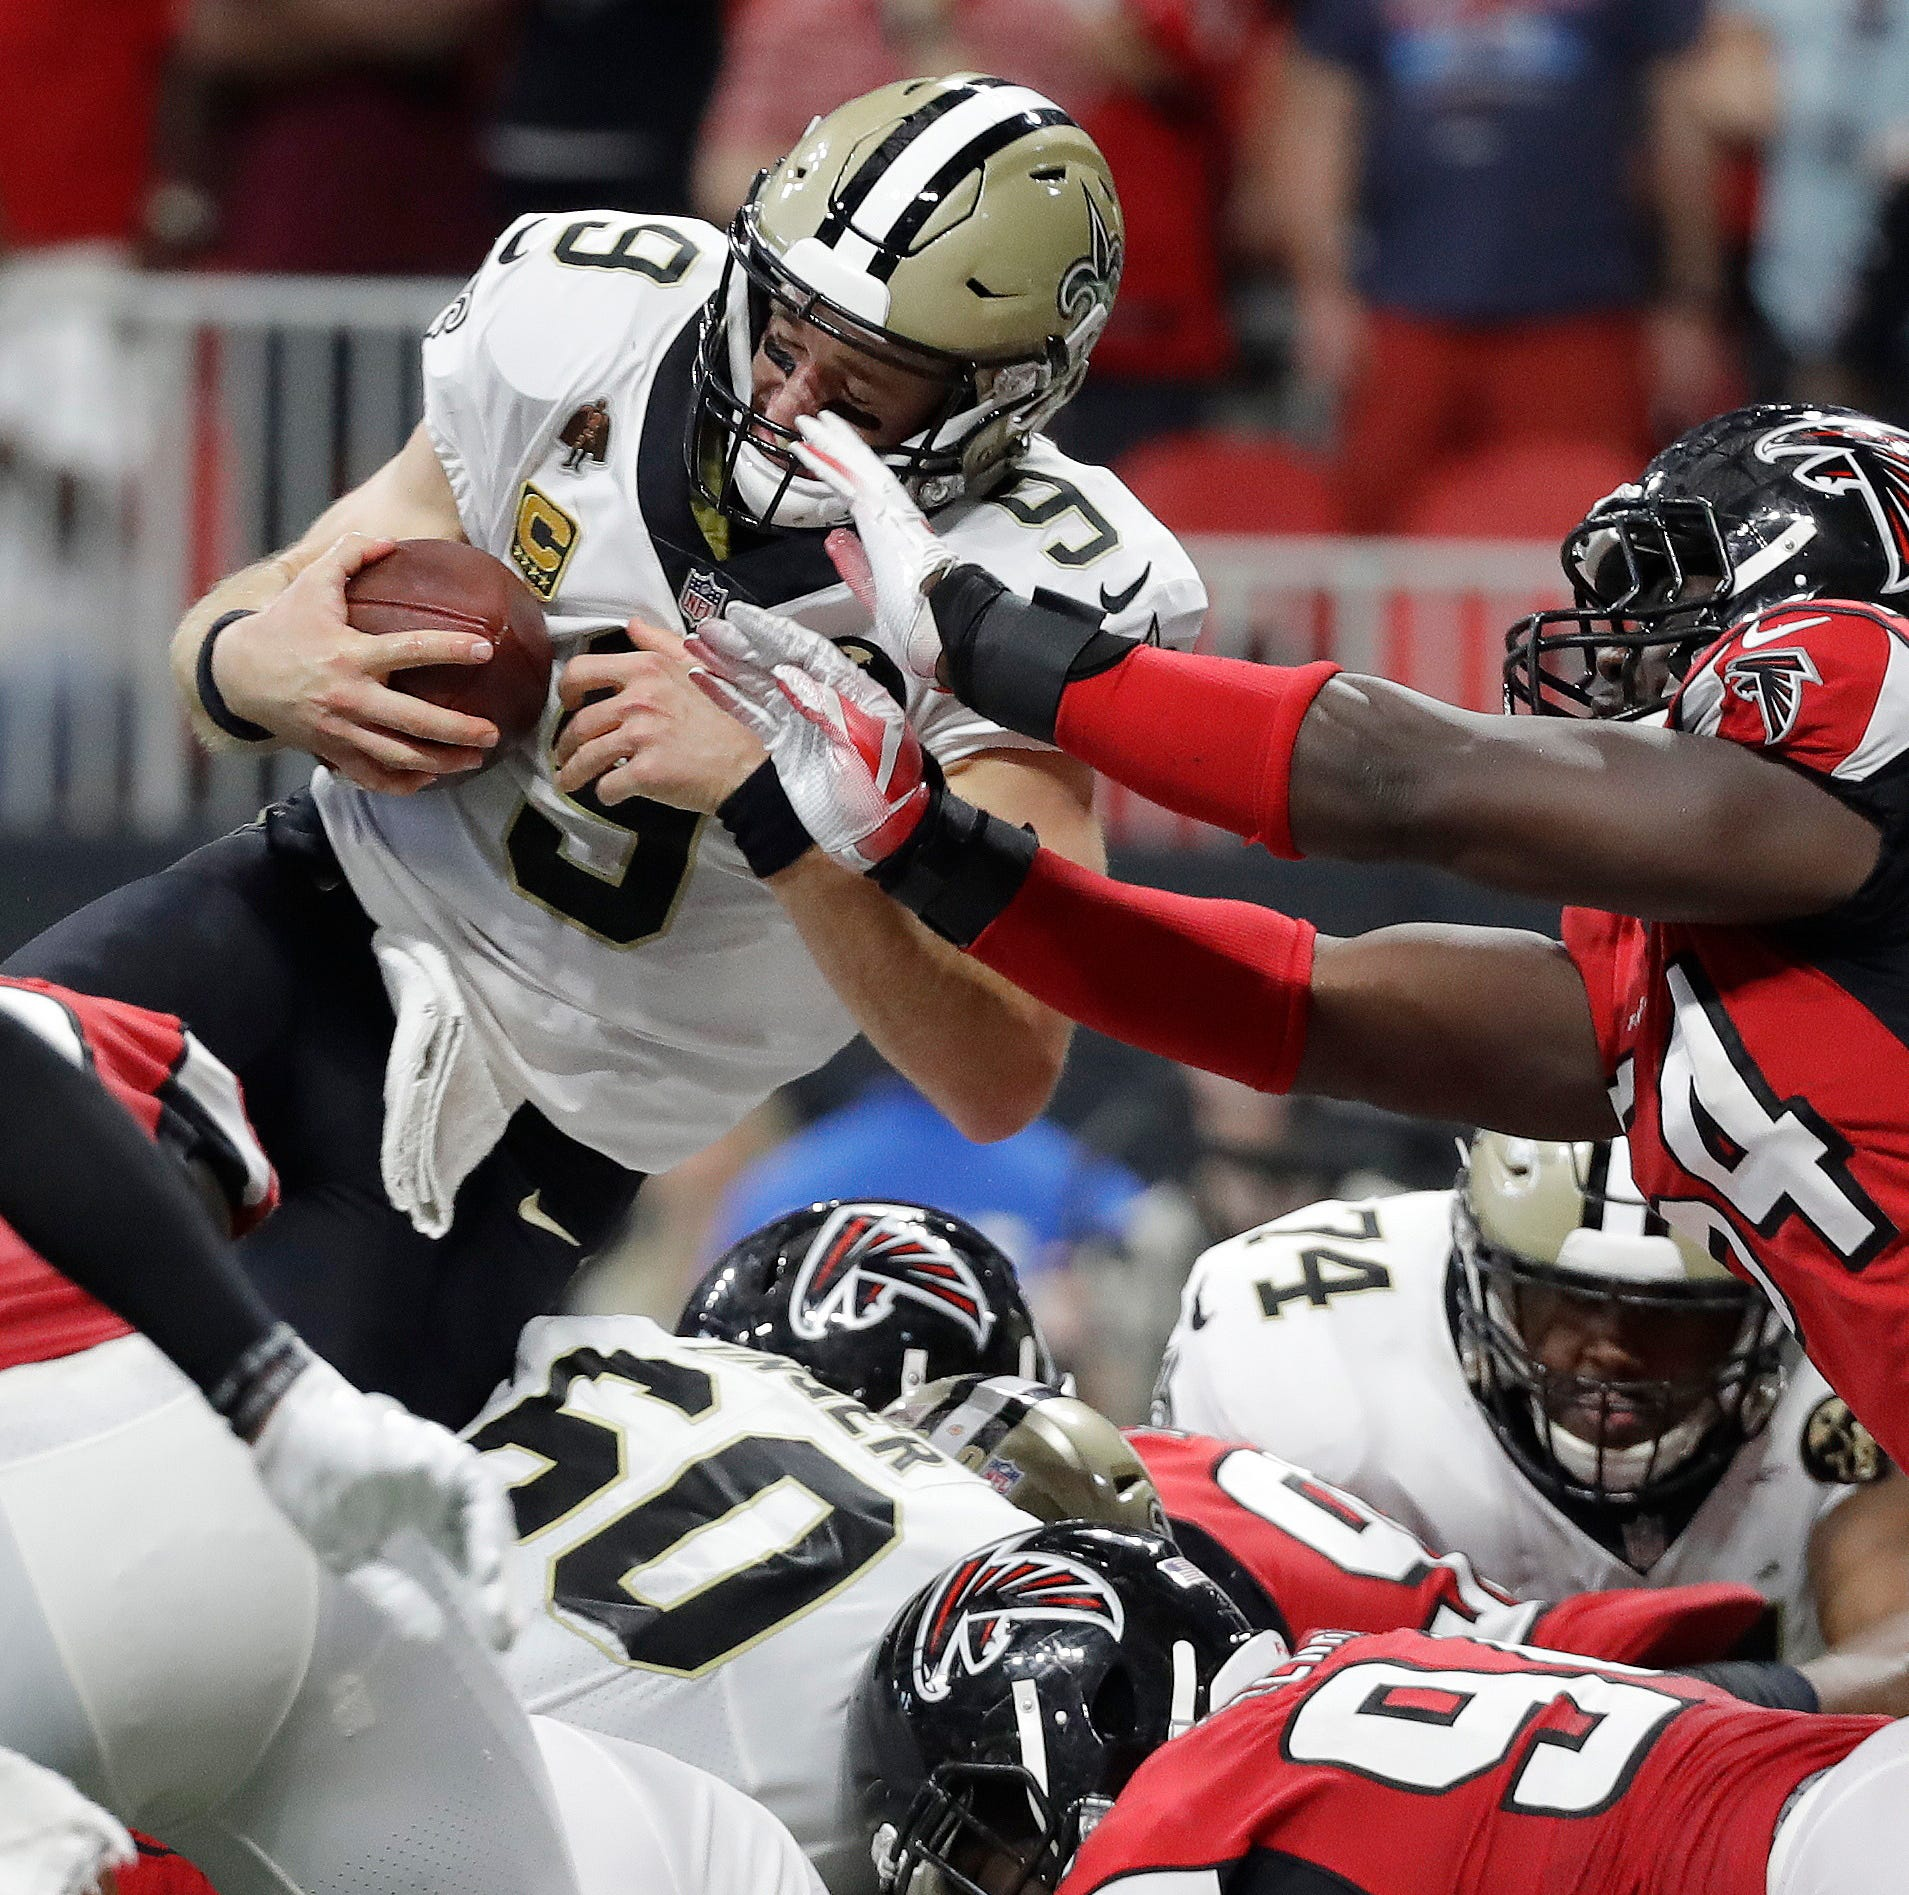 New Orleans Saints quarterback Drew Brees (9) leaps over the goal line for a touchdown against the Atlanta Falcons during overtime of Sunday's game. New Orleans won, 43-37.